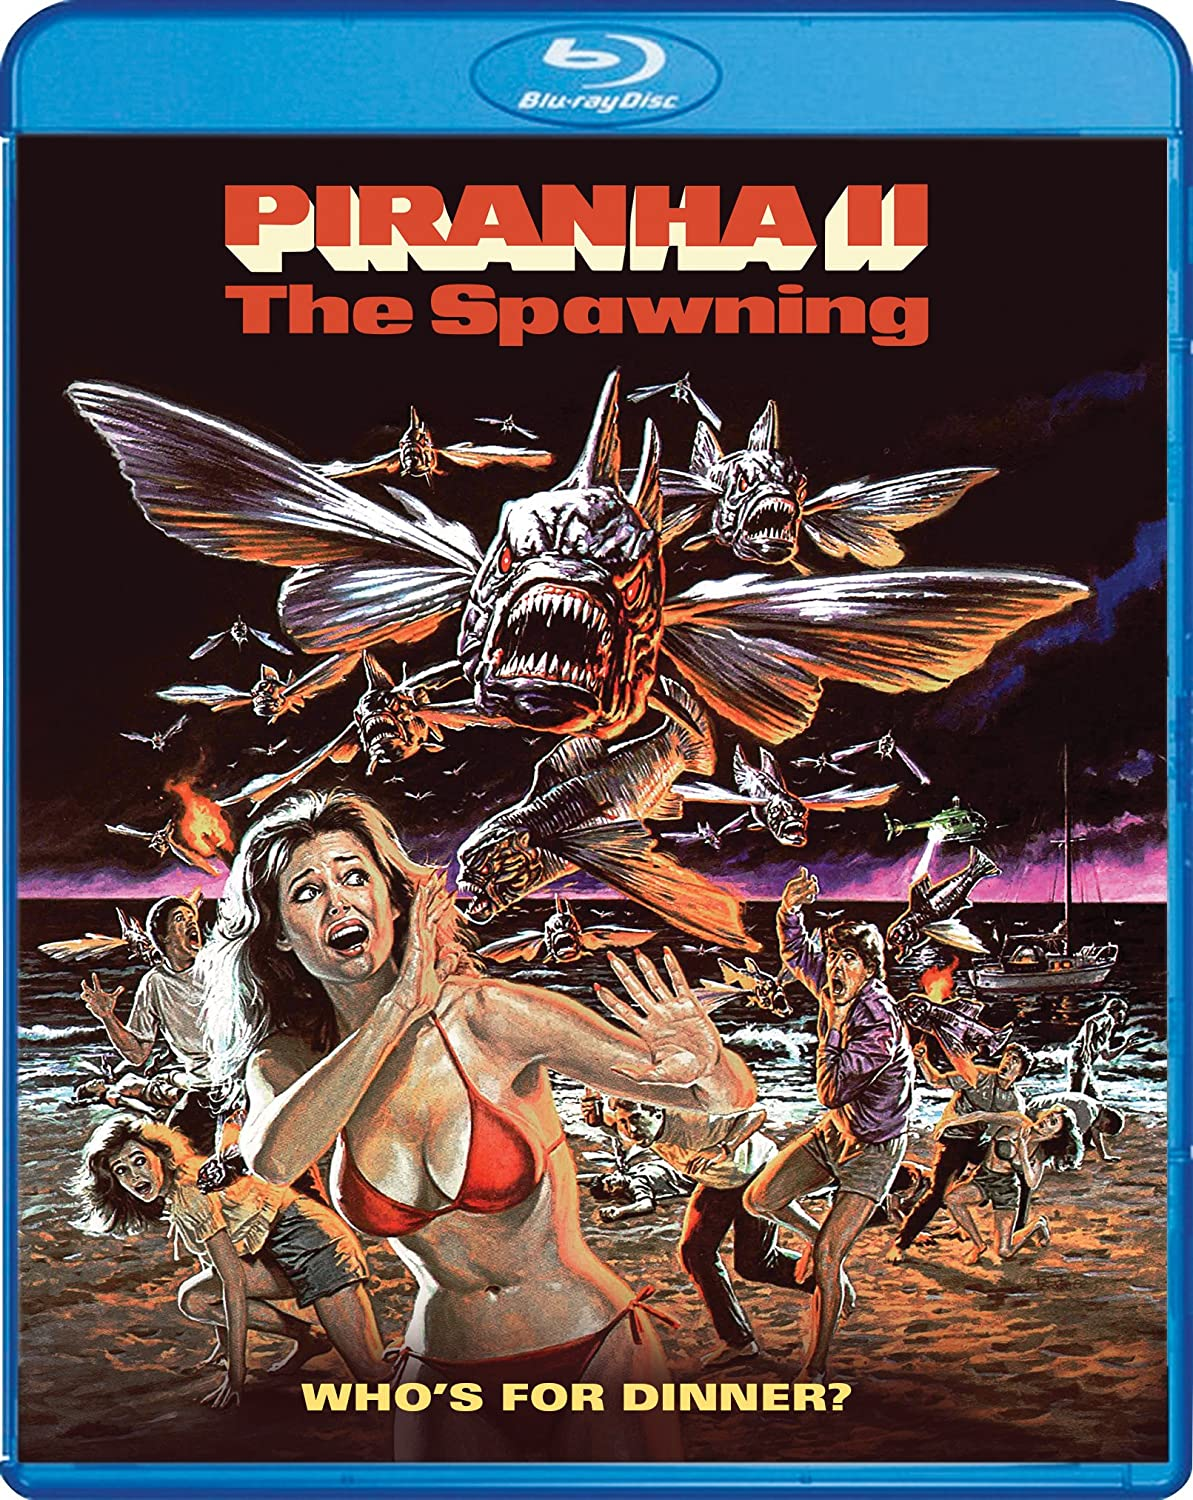 Piranha II: The Spawning [Blu-ray] Leslie Graves Ricky G. Paull Ovidio G. Assonitis James Cameron